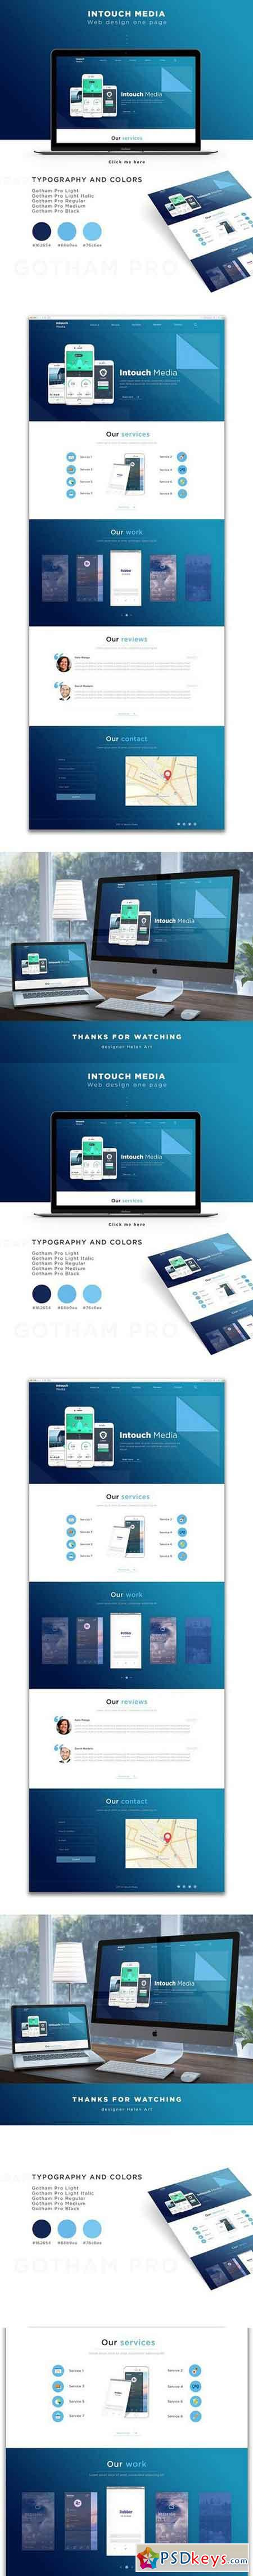 Intouch Media - Landing Page (PSD) 1644420